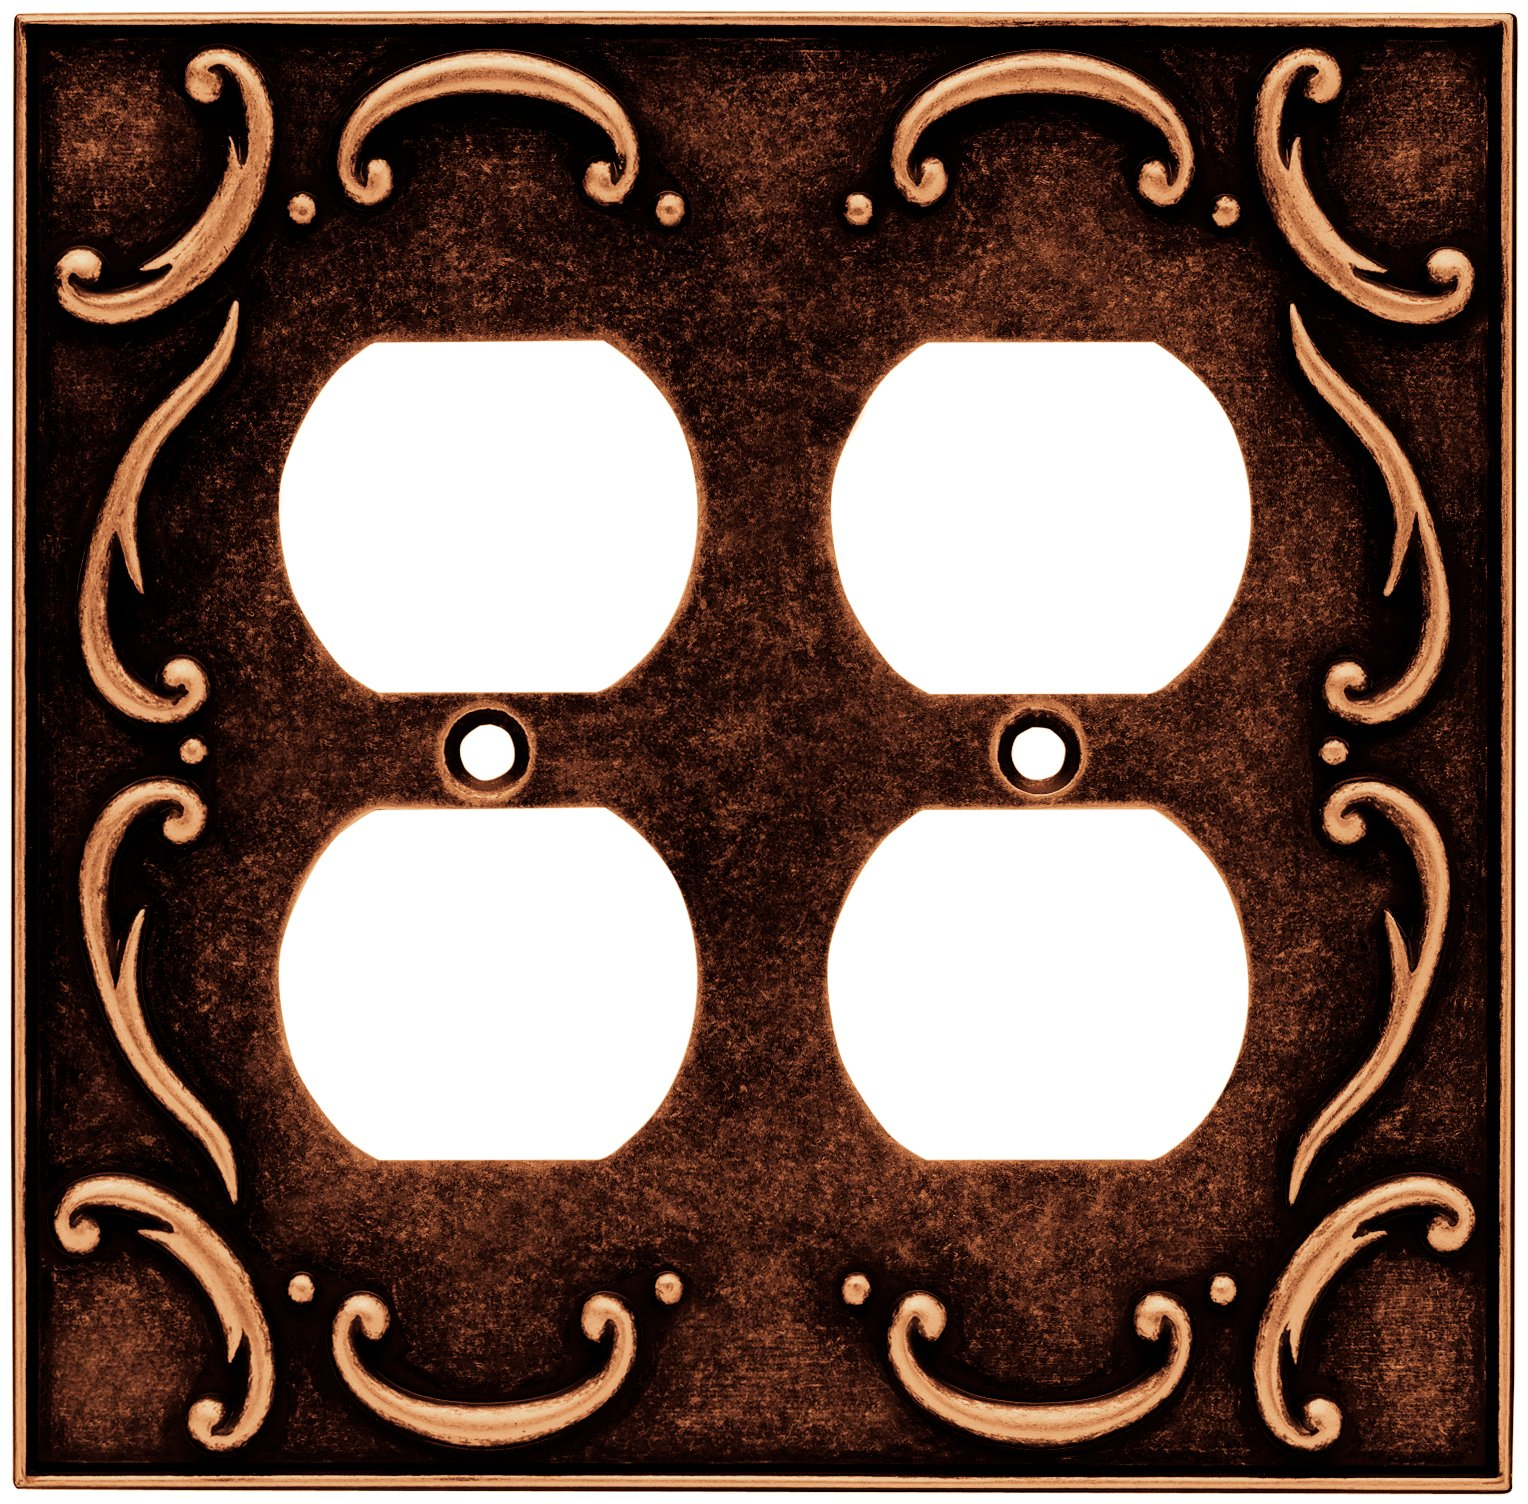 Brainerd 64258 French Lace Double Duplex Outlet Wall Plate / Switch Plate / Cover, Sponged Copper